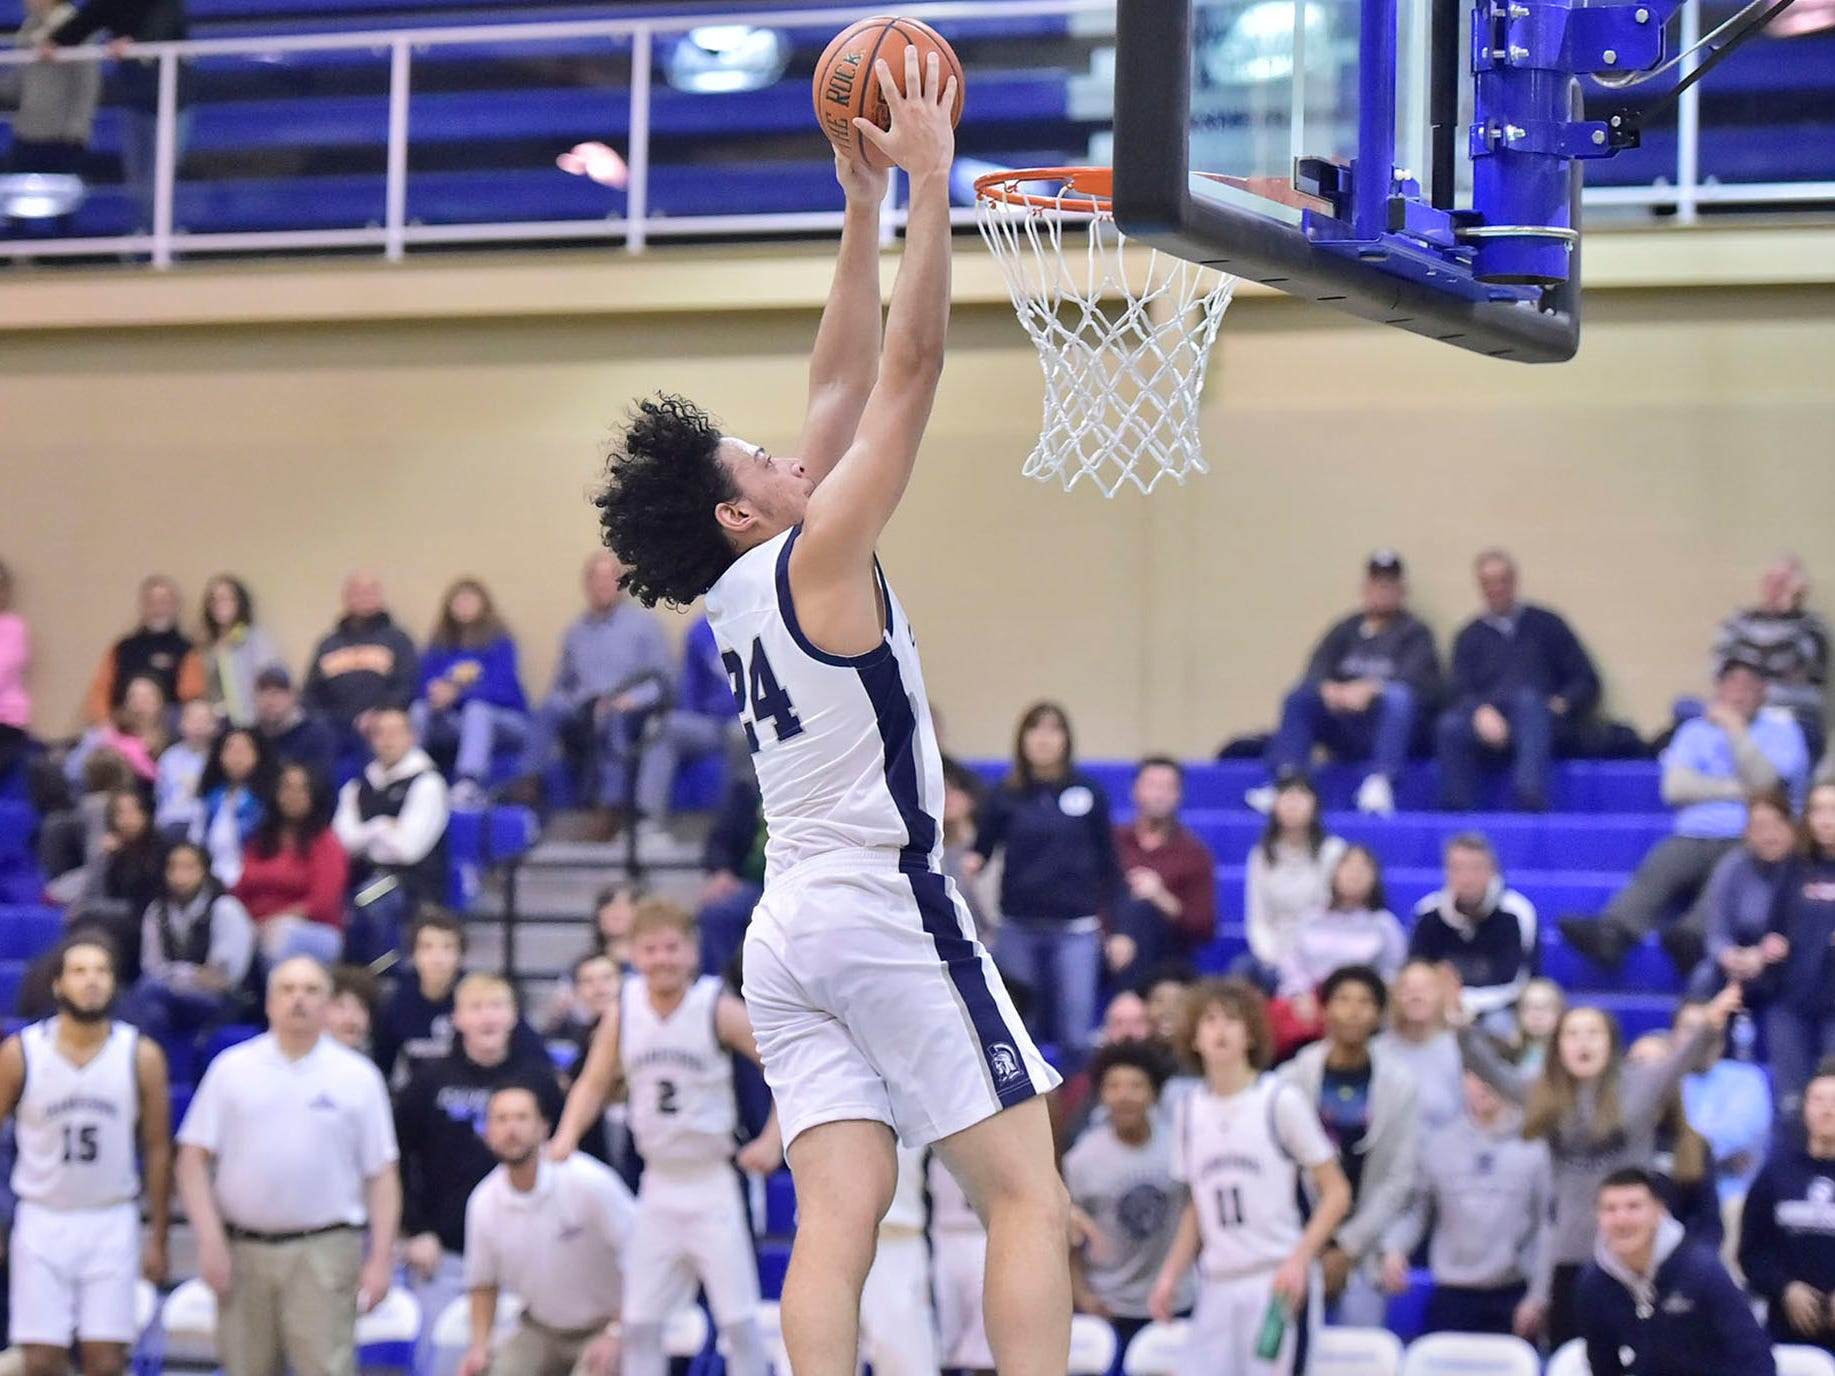 Chambersburg's Ty Holsopple dunks the ball during a fastbreak against Waynesboro. Chambersburg lost Waynesboro 42-39 during the finals at Franklin County Tip-Off Tournament, Saturday, Dec. 8, 2018.